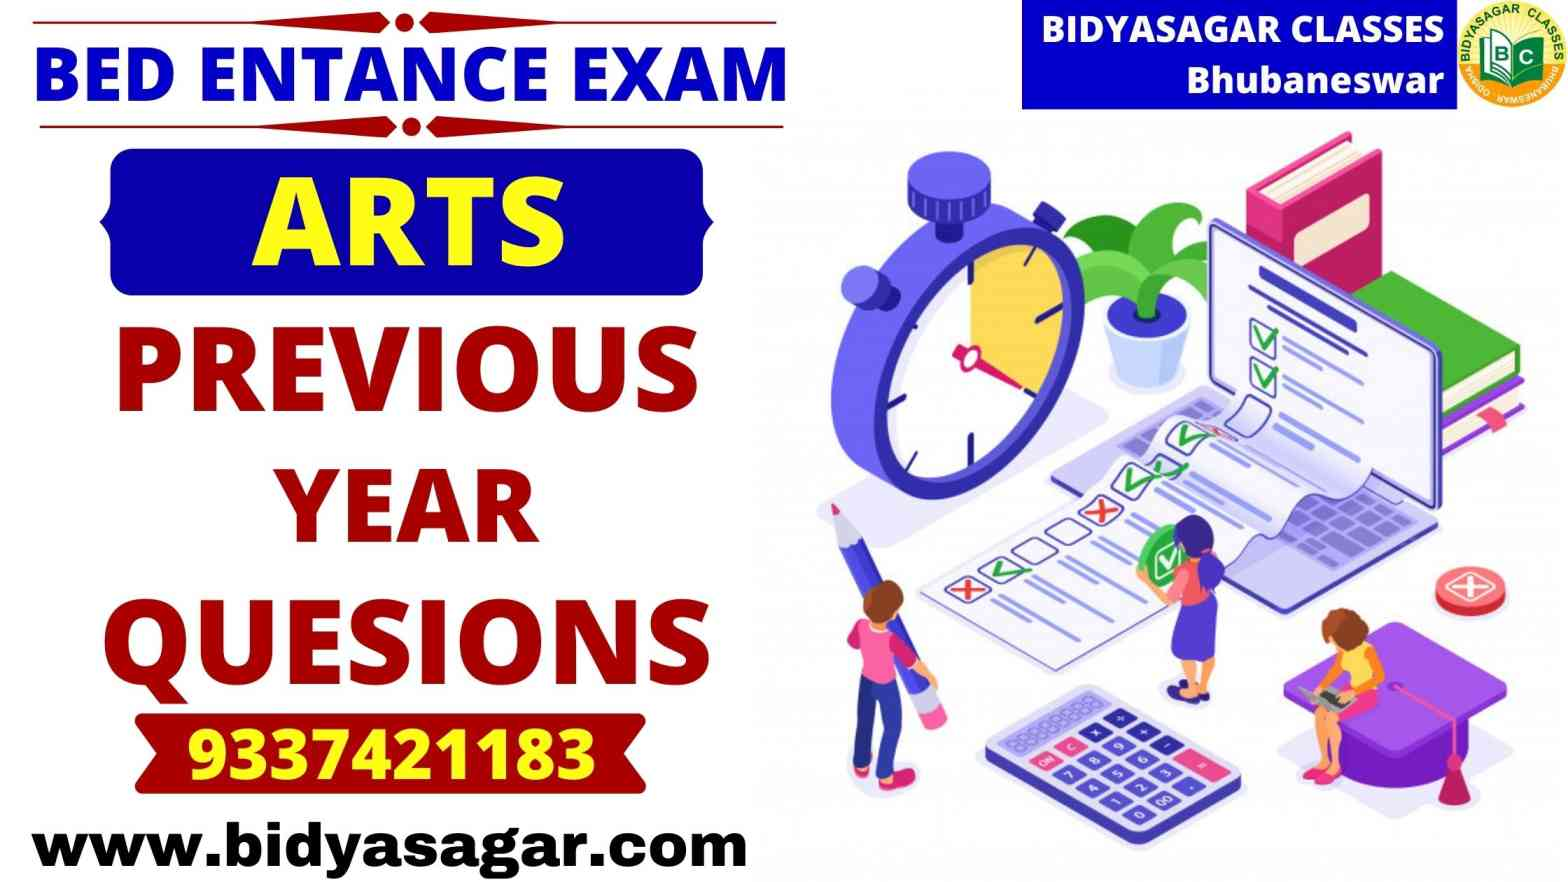 Odisha State B.Ed Entrance Exam Arts Previous Year Questions